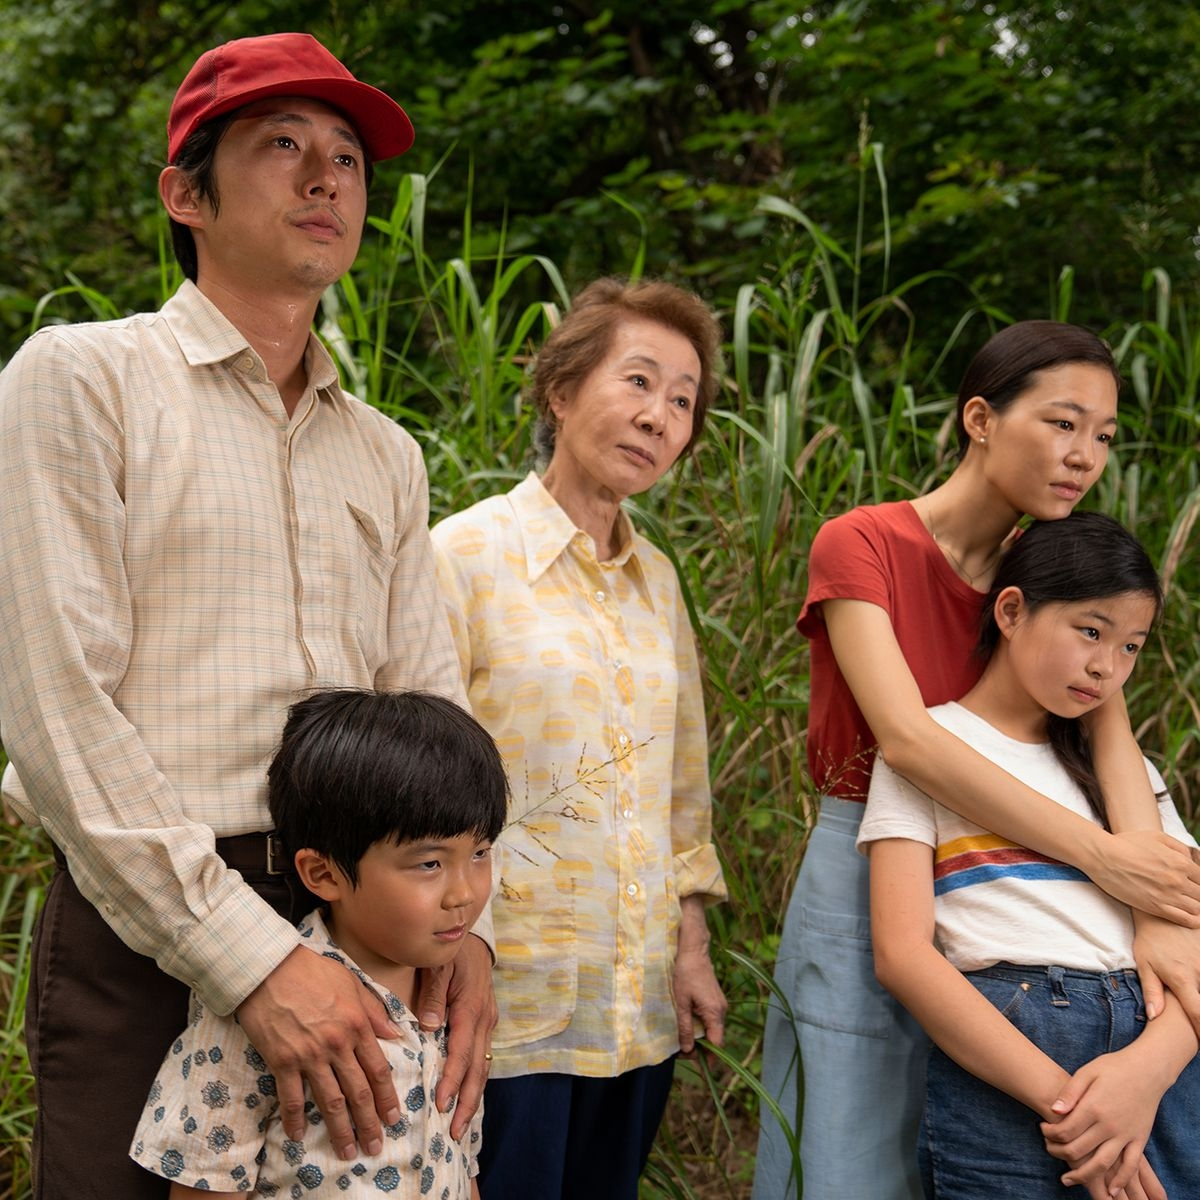 Lulu Wang, John M Chu and others slam Golden Globes for relegating 'Minari' to foreign language film category